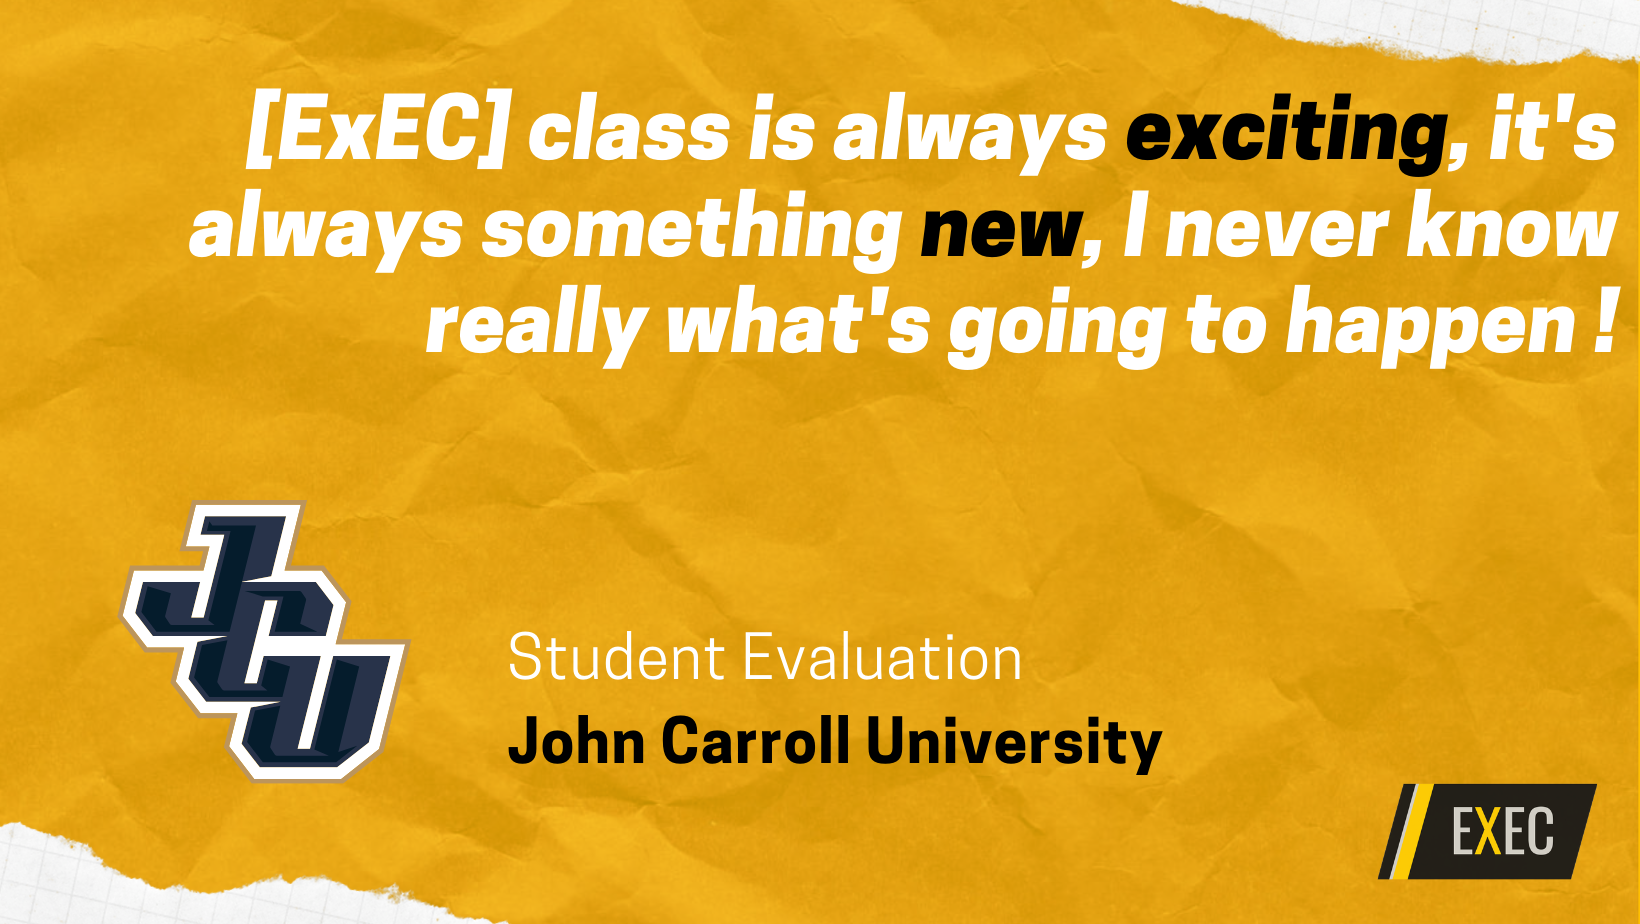 Improve student evaluations with ExEC